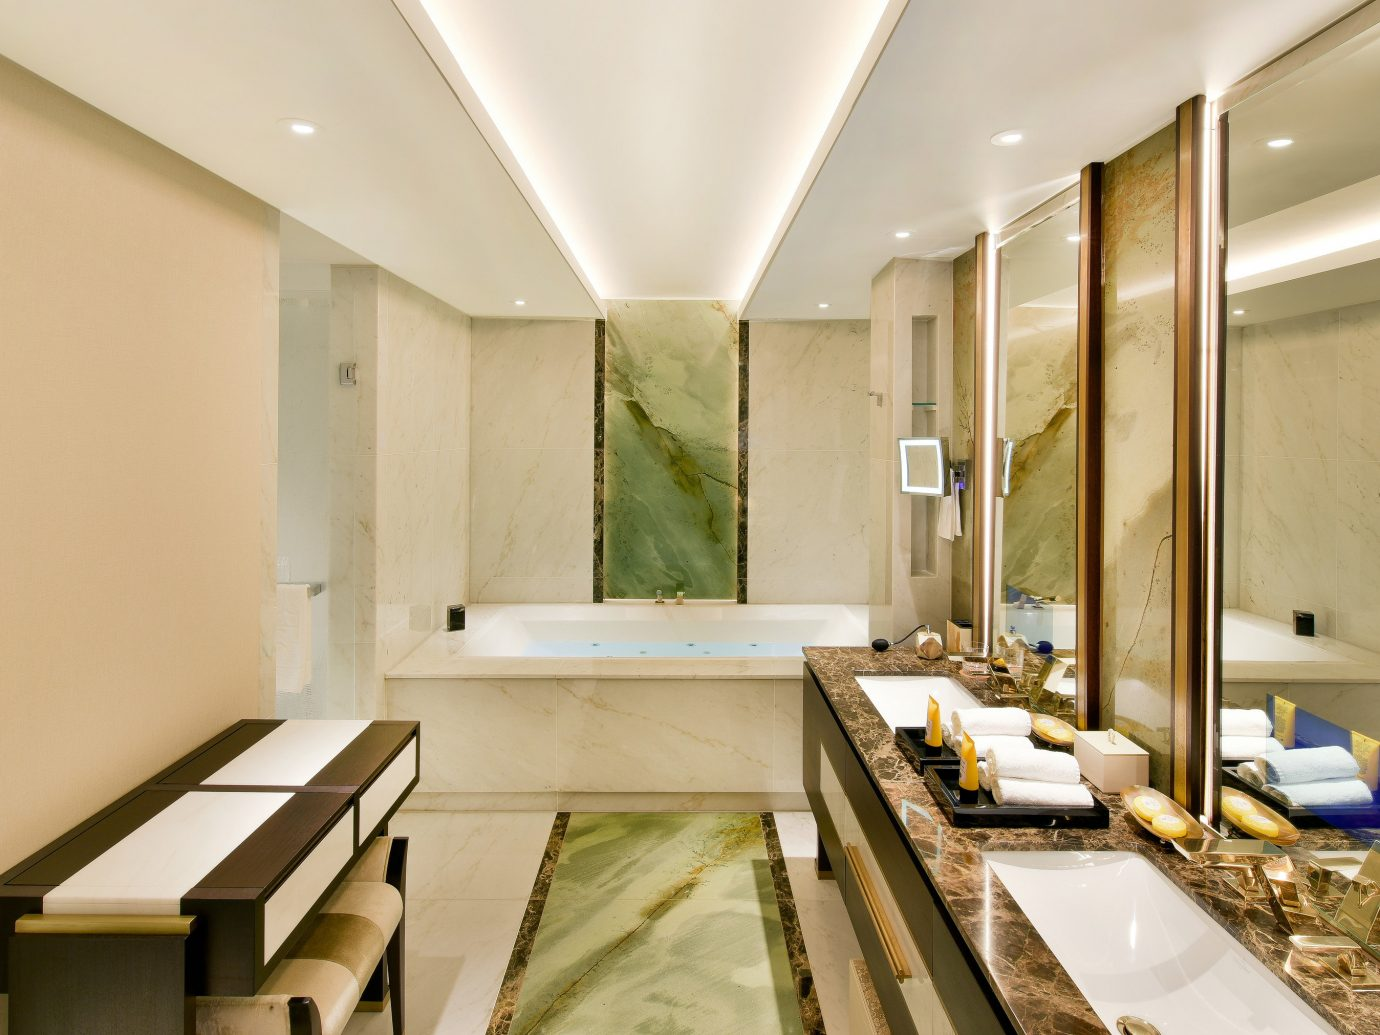 Hotels Luxury Travel indoor wall bathroom ceiling interior design counter sink Lobby interior designer daylighting